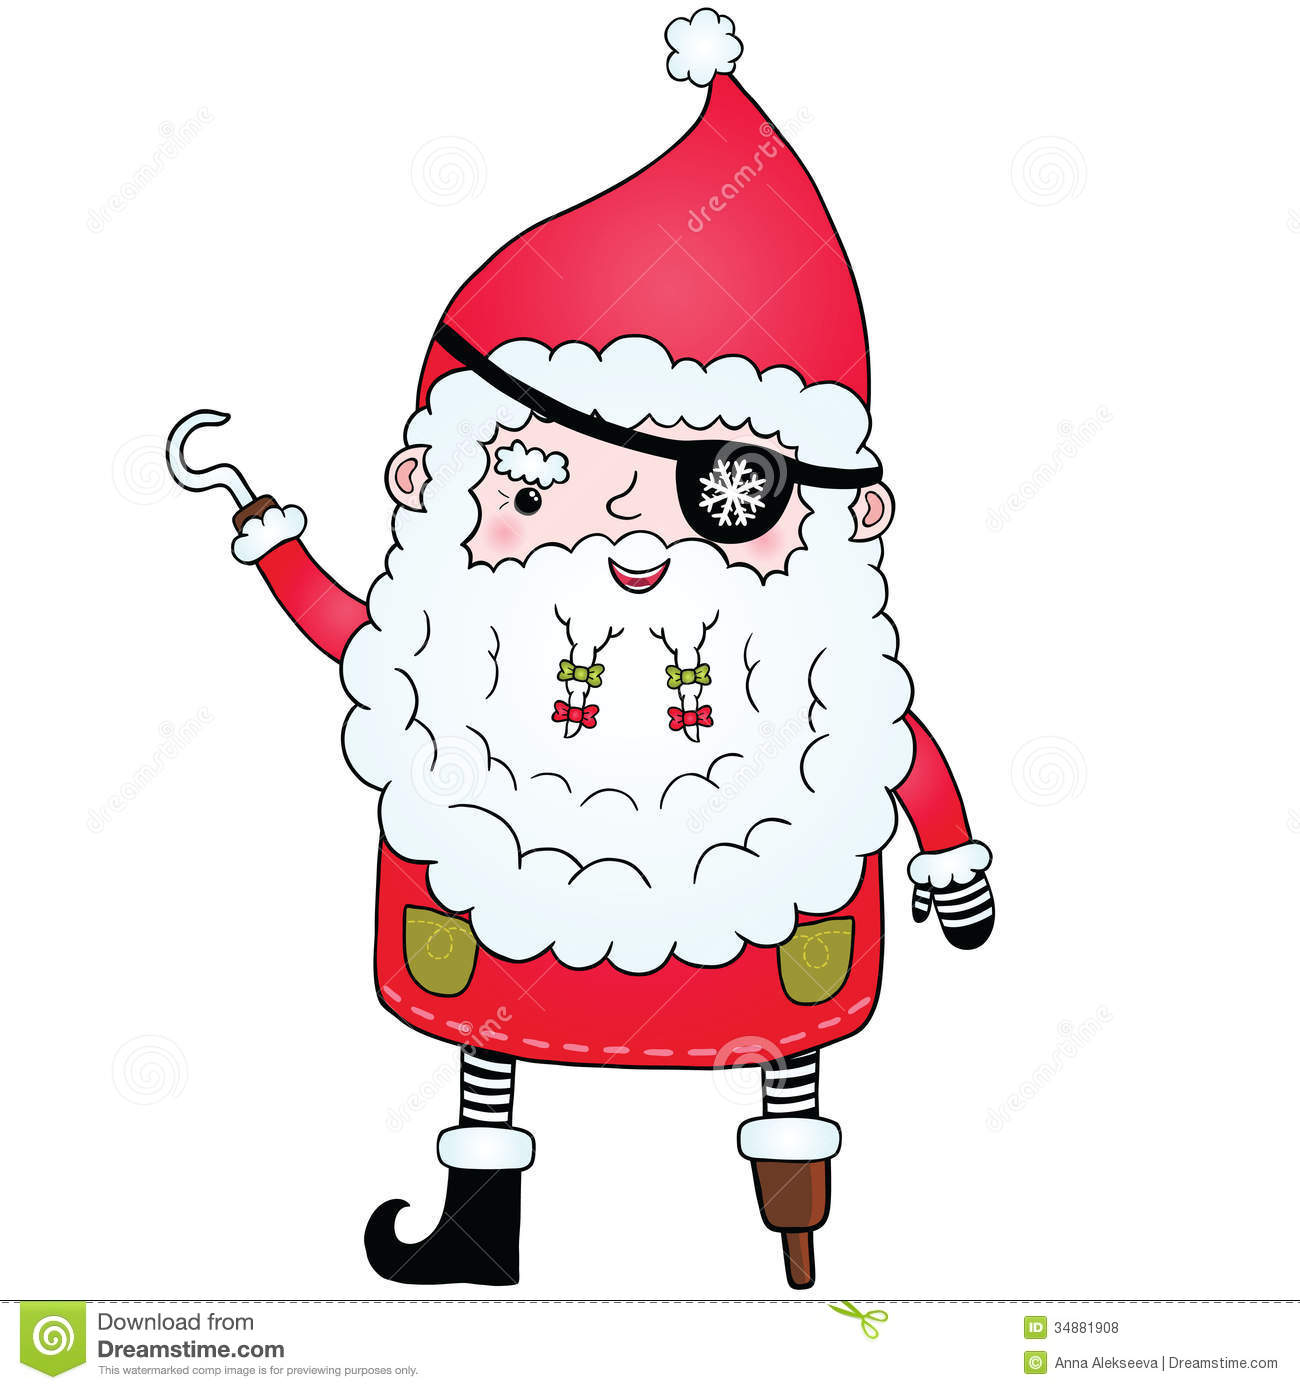 f7b2f2f7d7a06 Santa Claus pirate stock illustration. Illustration of hand - 34881908